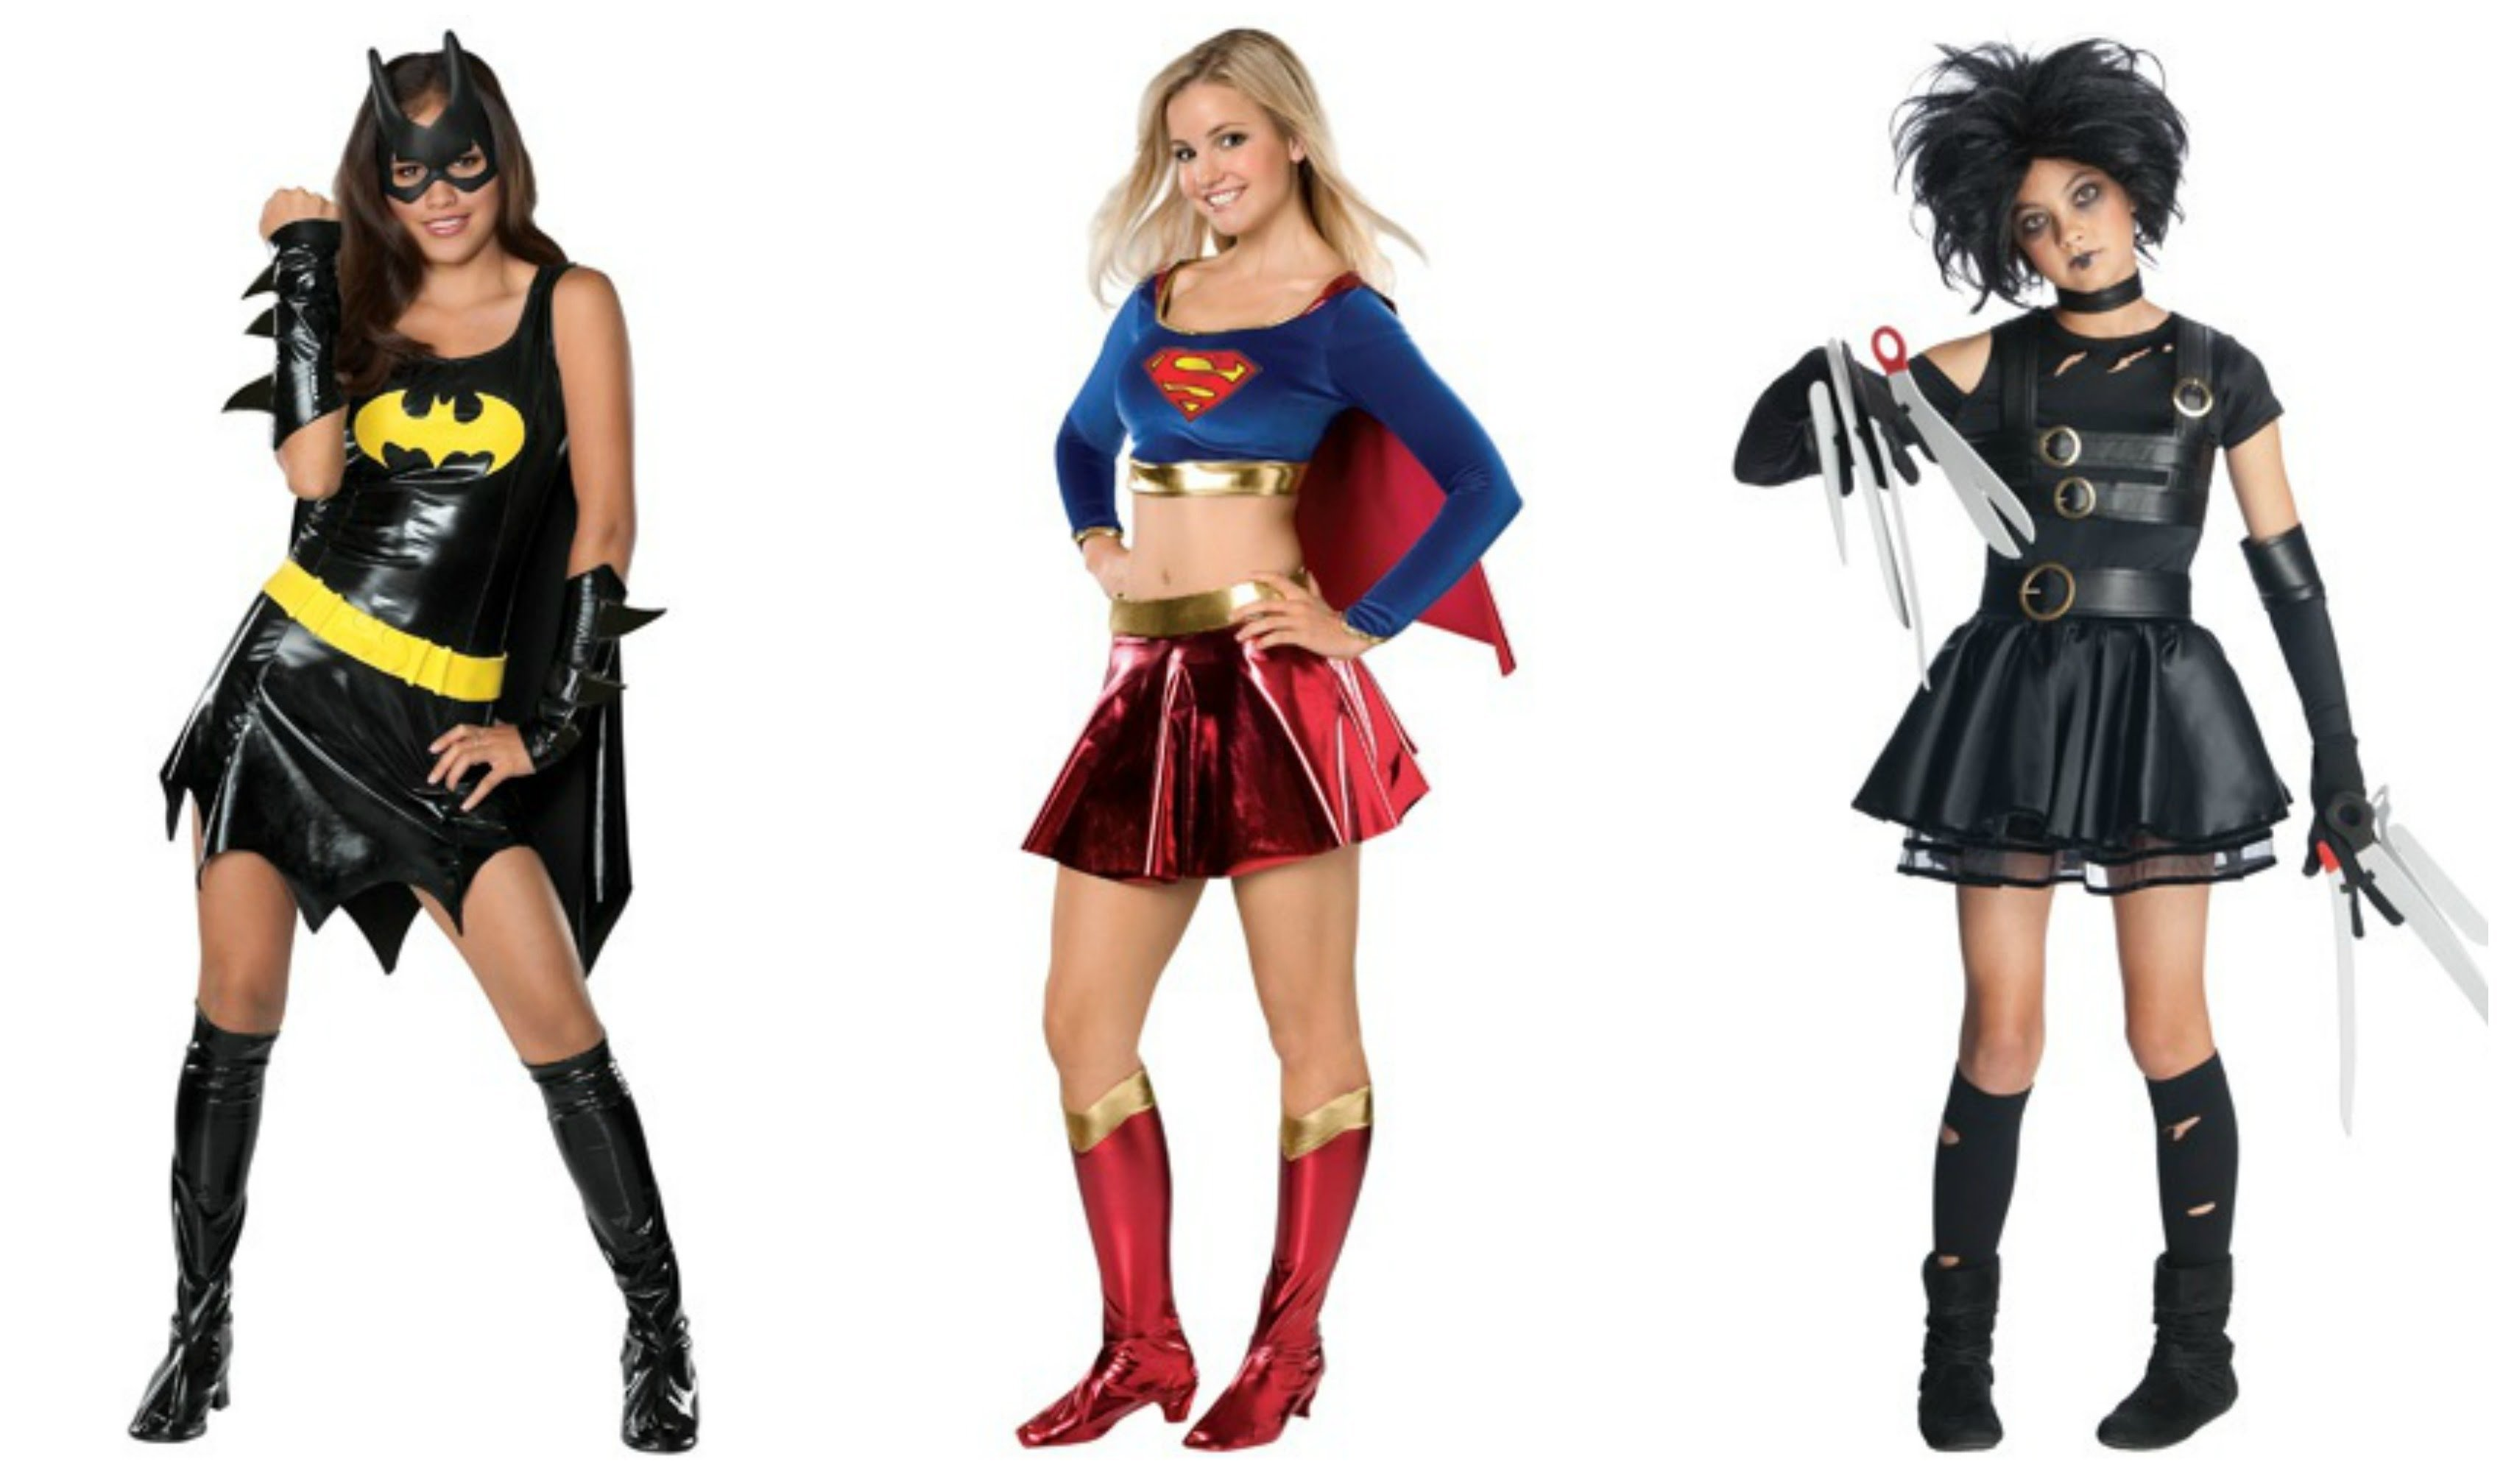 10 Stylish Costume Ideas For Tween Girls halloween costume ideas for teens girls youtube halloween costumes 16 2020